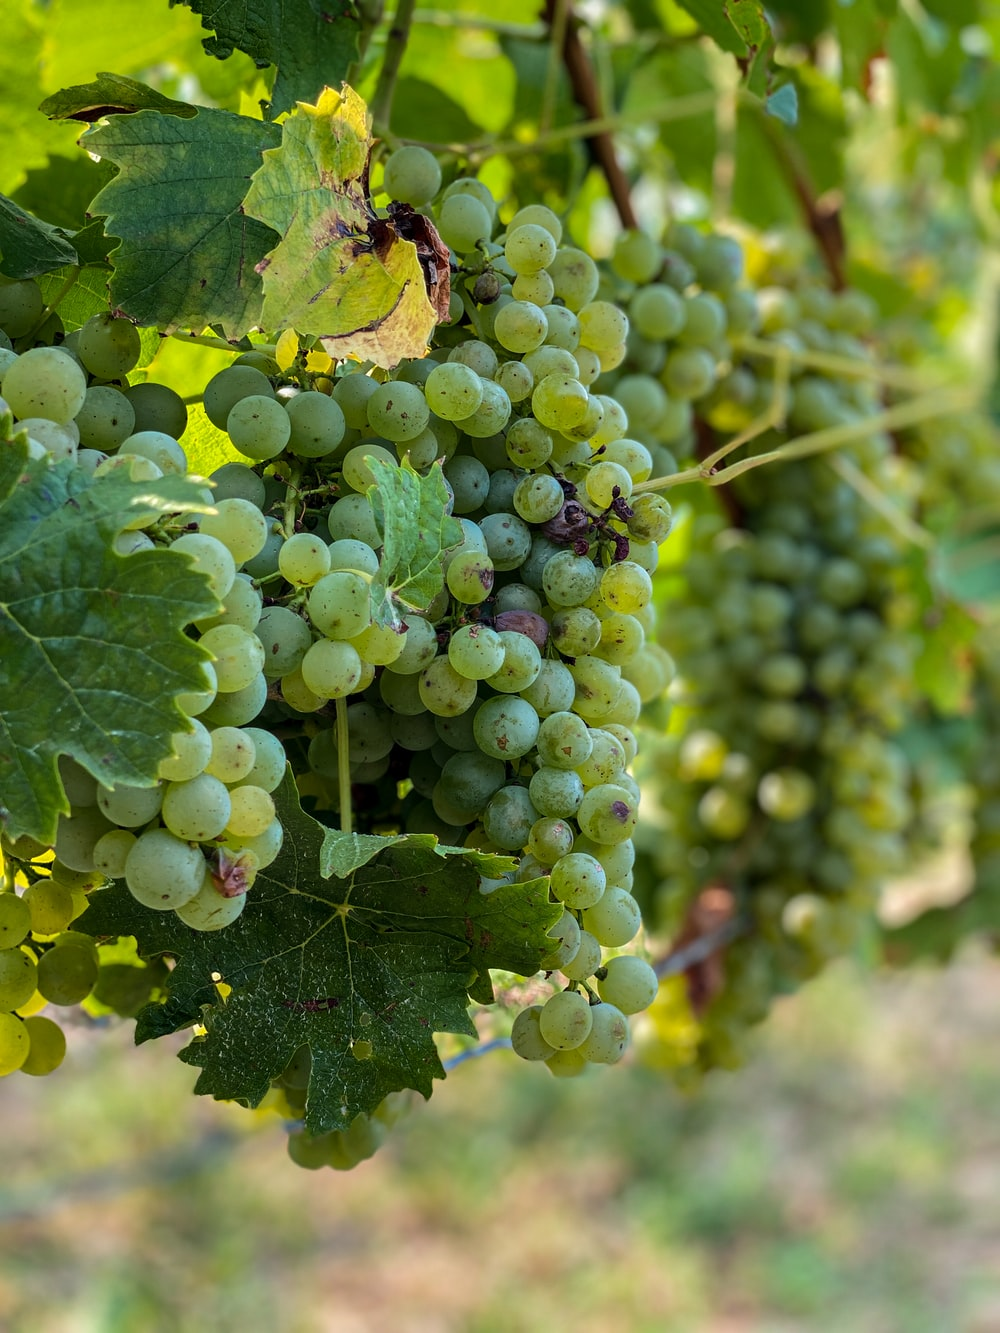 green grapes in close up photography during daytime